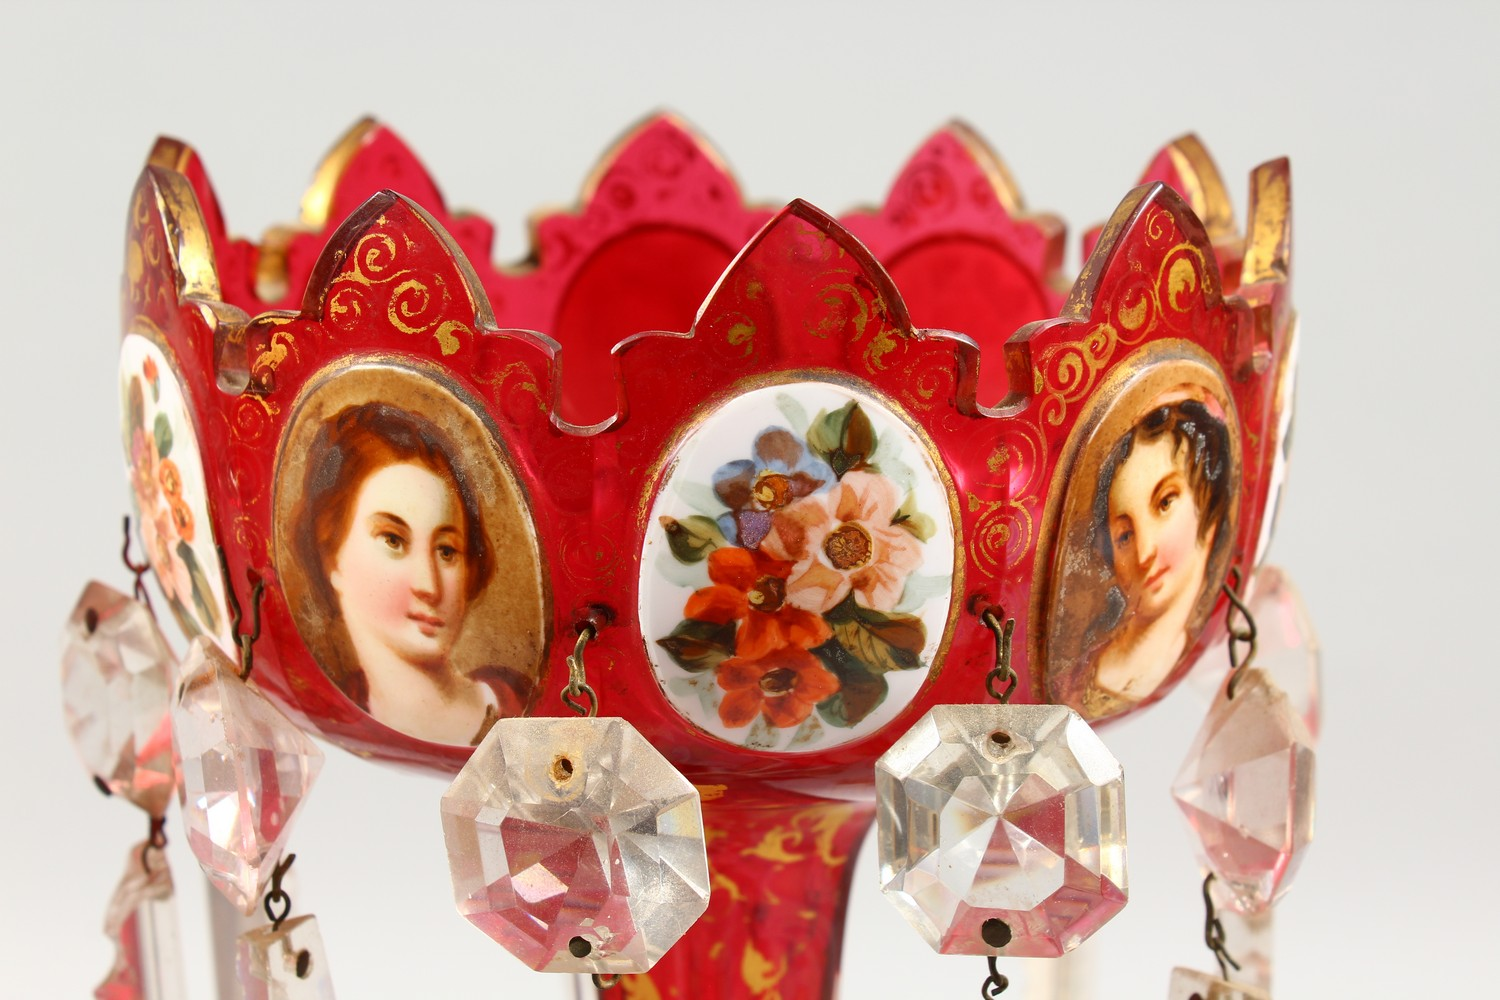 Lot 1058 - A PAIR OF CRANBERRY GLASS TABLE LUSTRES, painted with panels of flowers and female portrait busts.